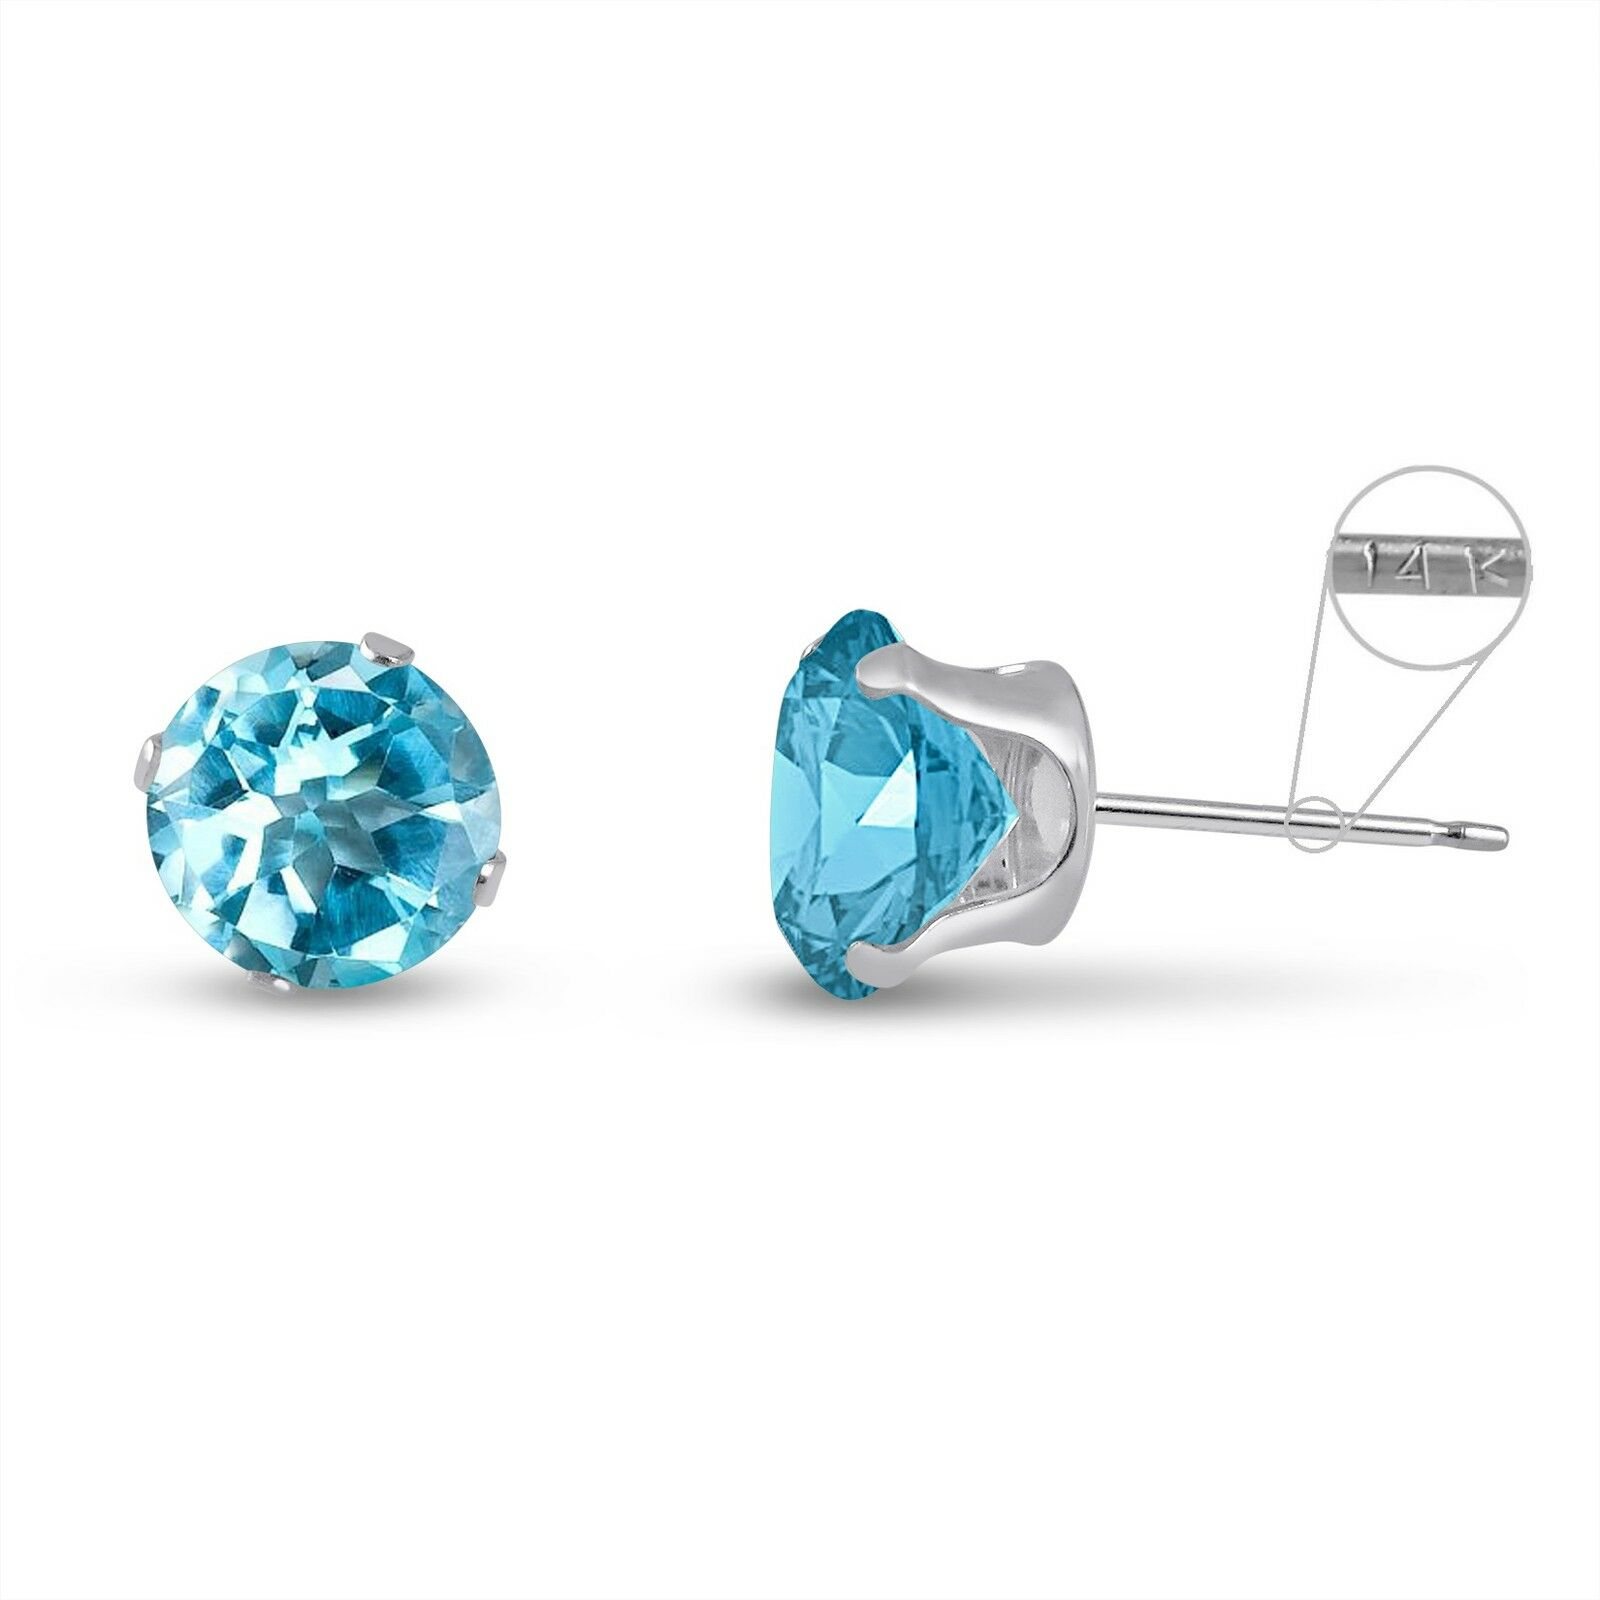 Solid 14k White Gold Round Genuine Sky Blue Topaz March Stud Earrings 2mm 8mm 1 Of 1free Shipping